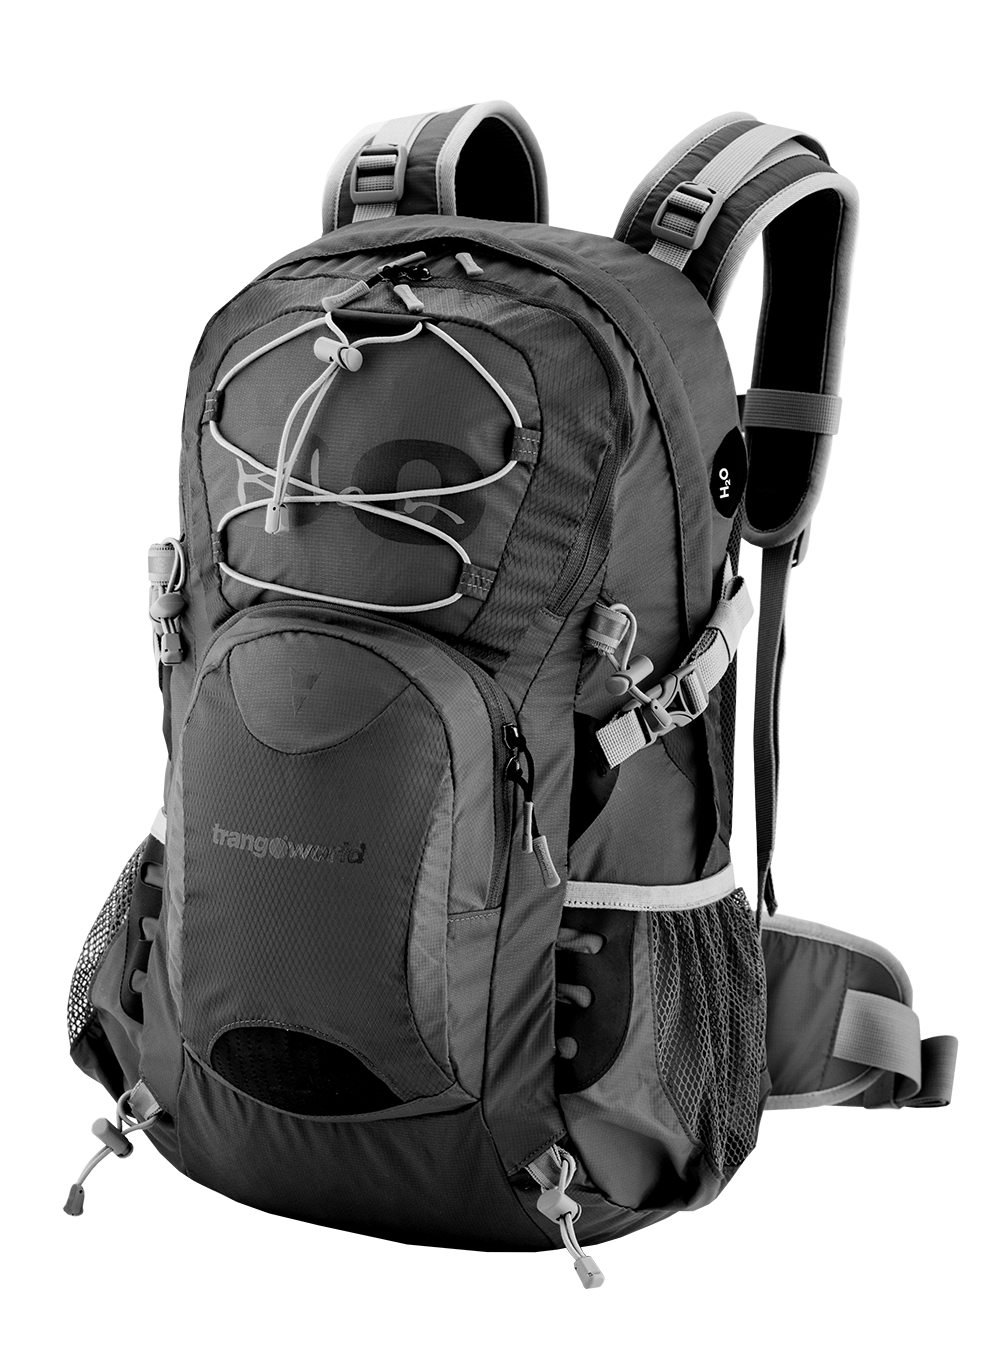 Technical Backpack For Hiking PNG Image